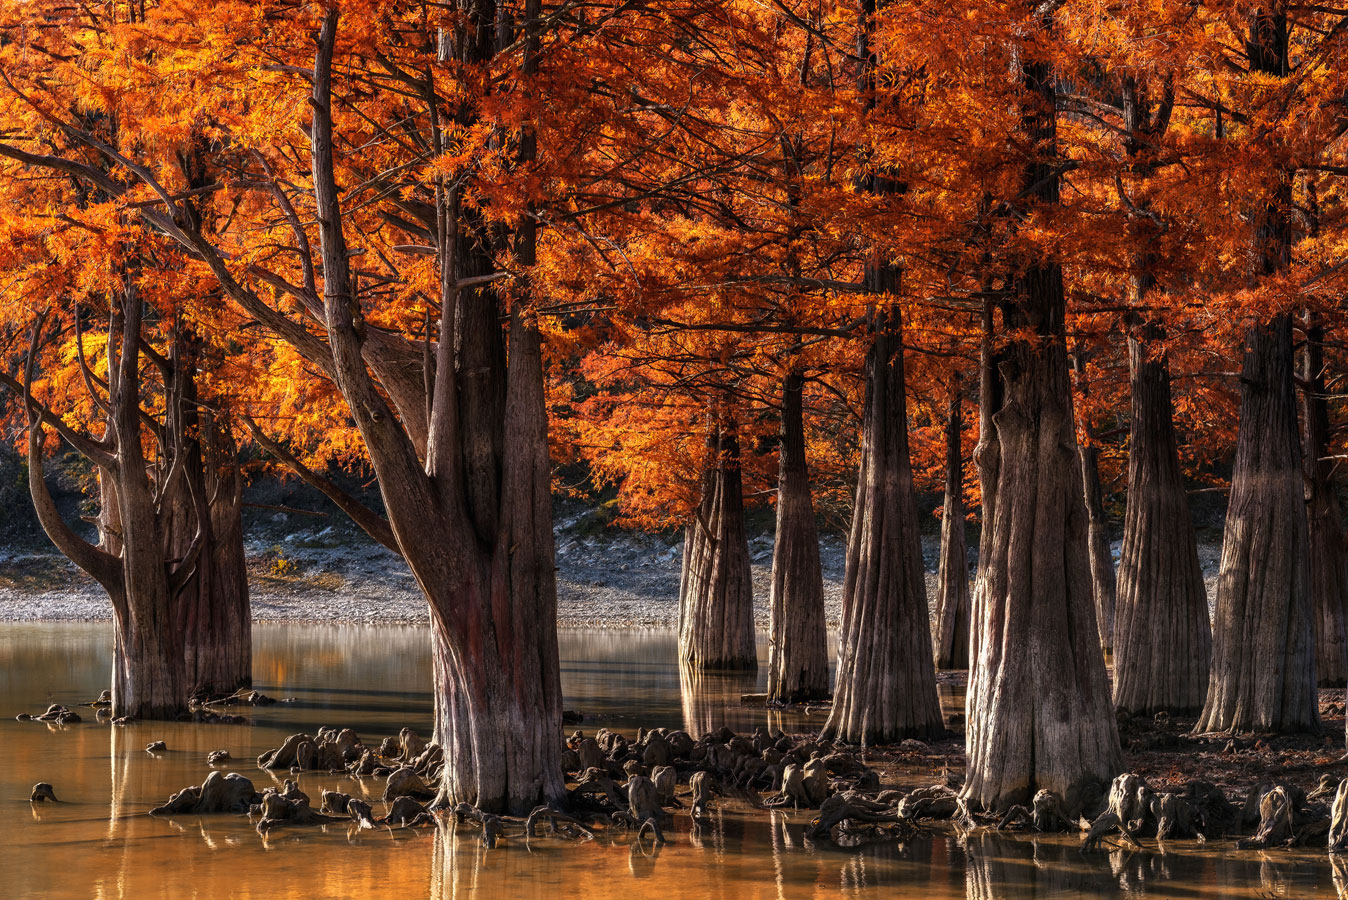 Swamp cypress (Taxodium distichum) near Sukko, Krasnodar Krai, Russia, © Aleksandr Horoshilov, 6 place, Wiki Loves Earth Photo Contest